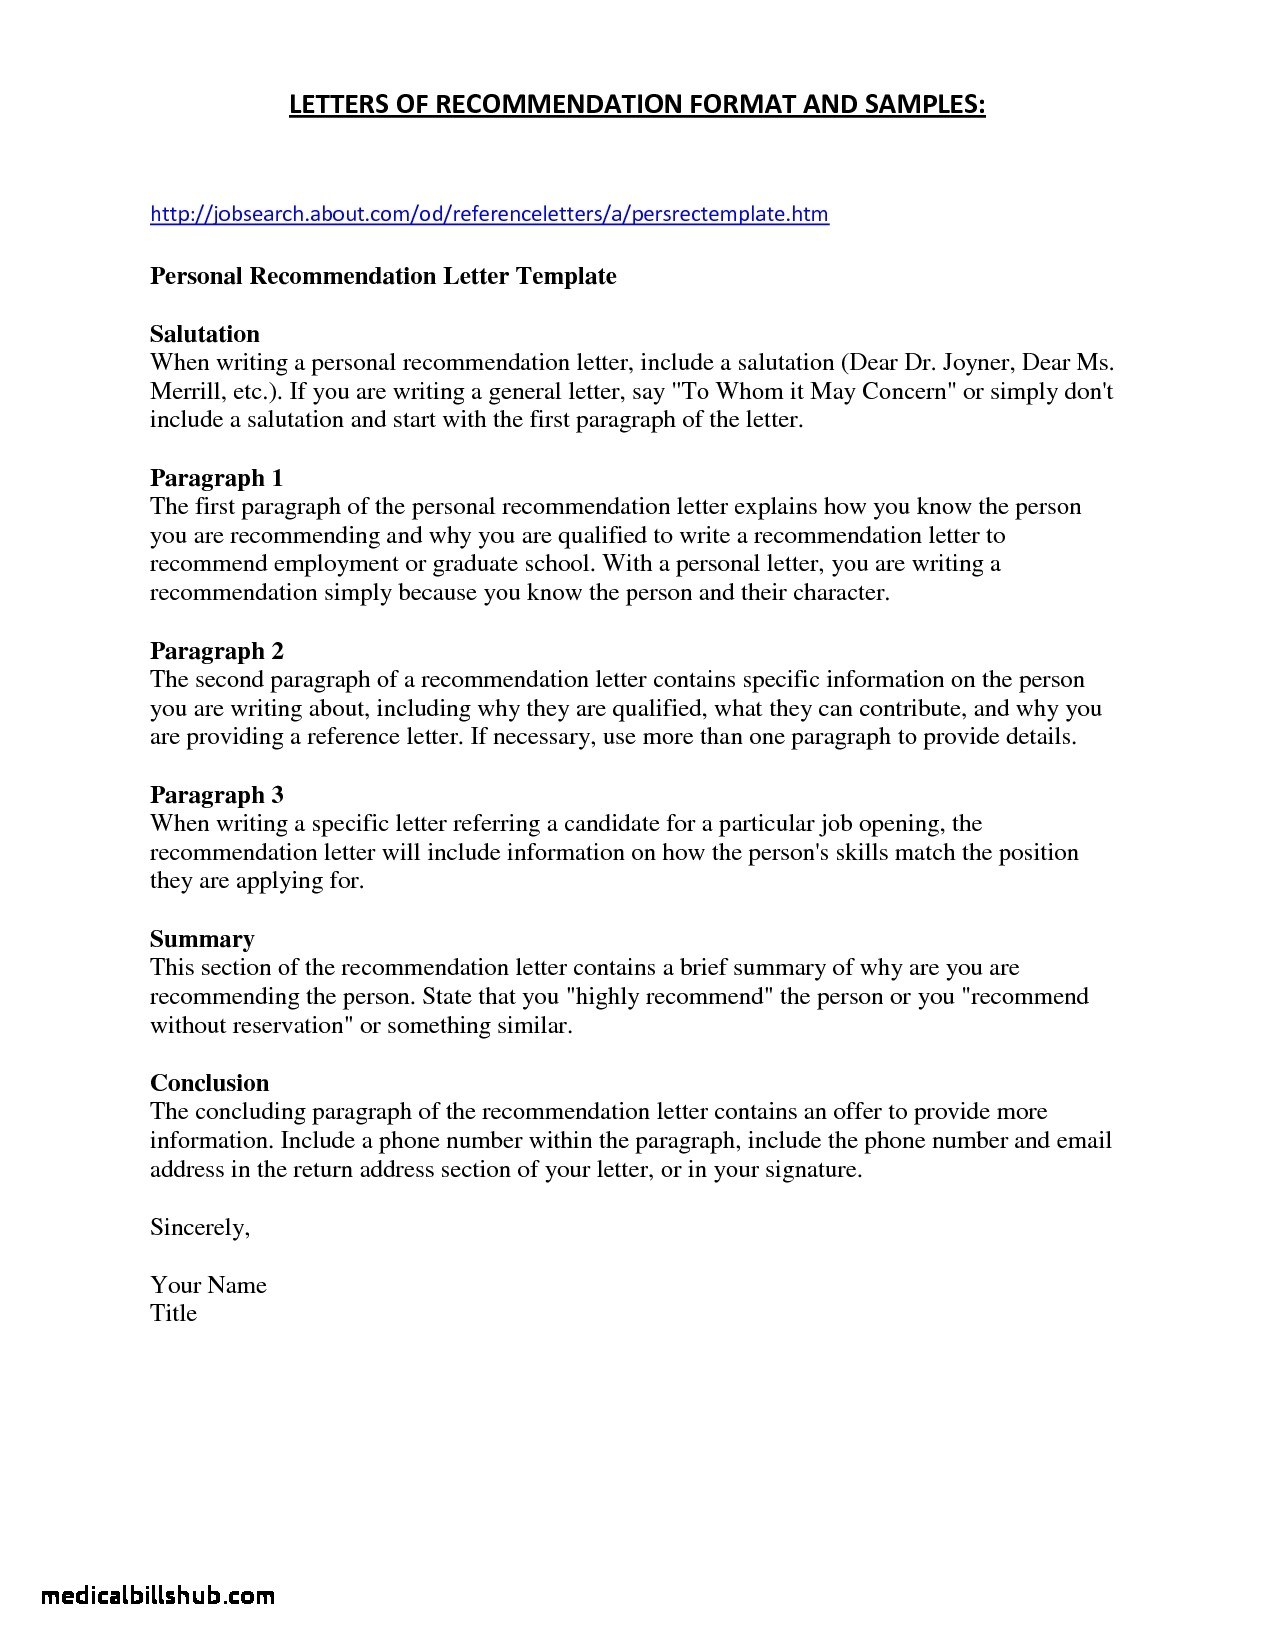 Nursing School Recommendation Letter Template - Sample Re Mendation Letter for Job New Letter Re Mendation for